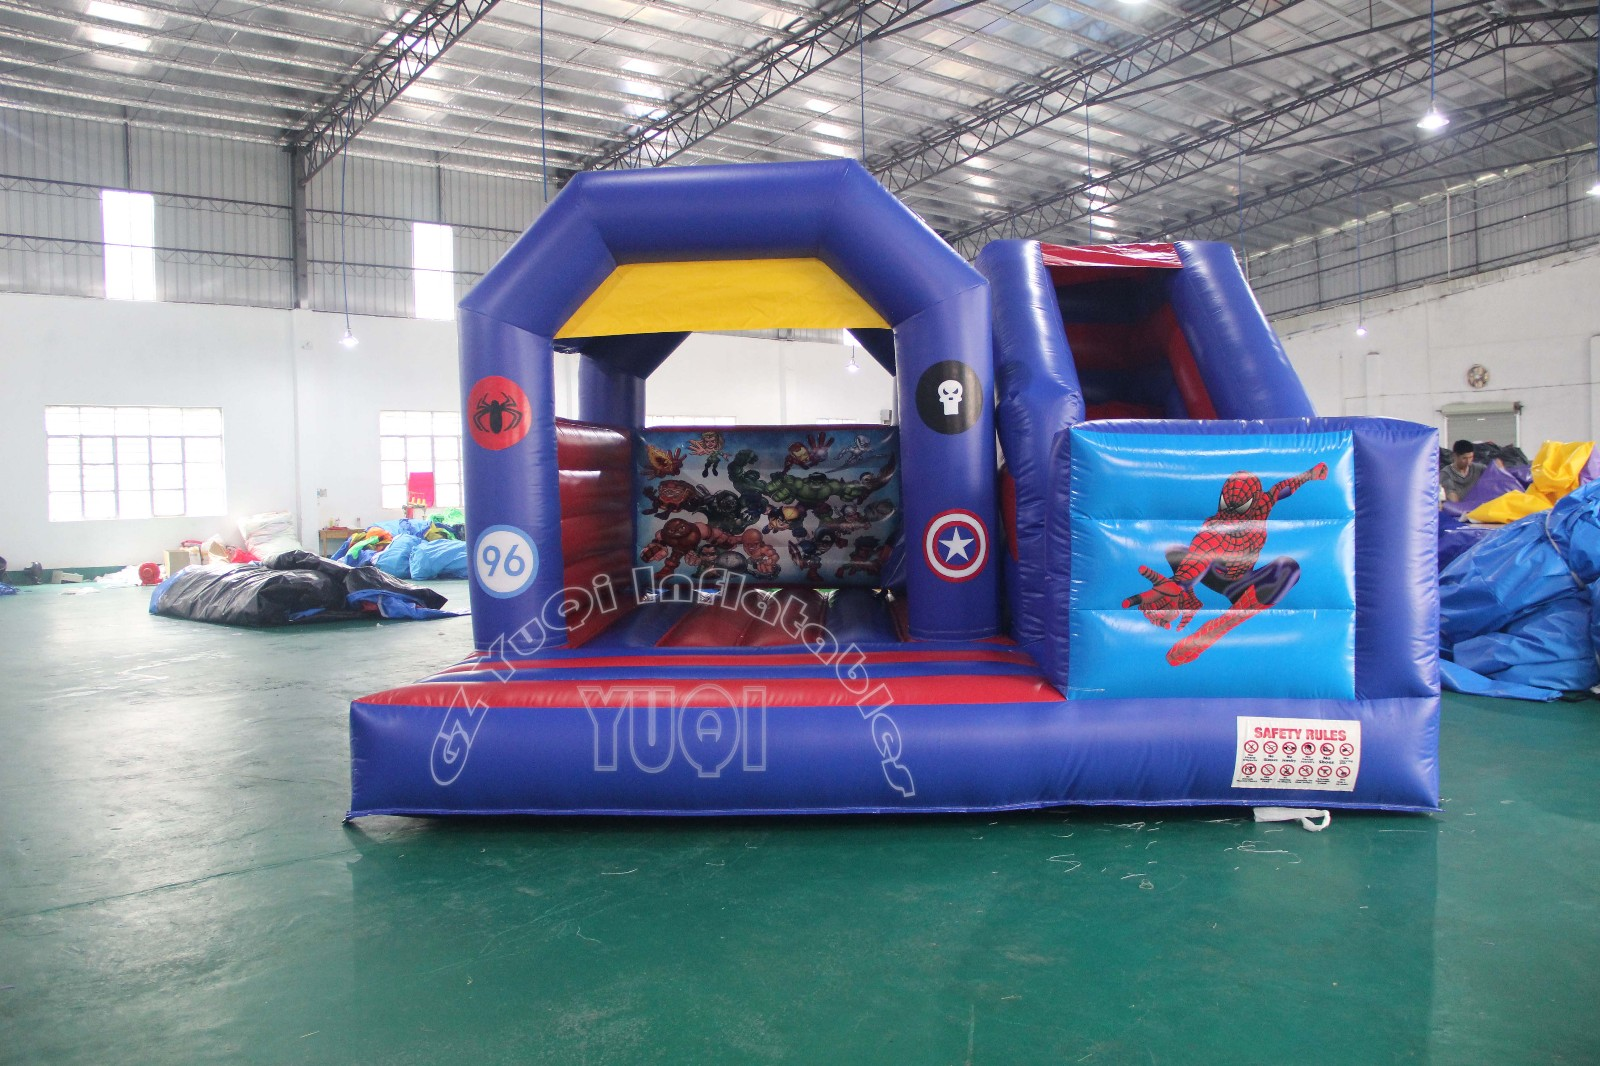 YUQI-Bounce House Combo And Commercial Bounce House With Slide